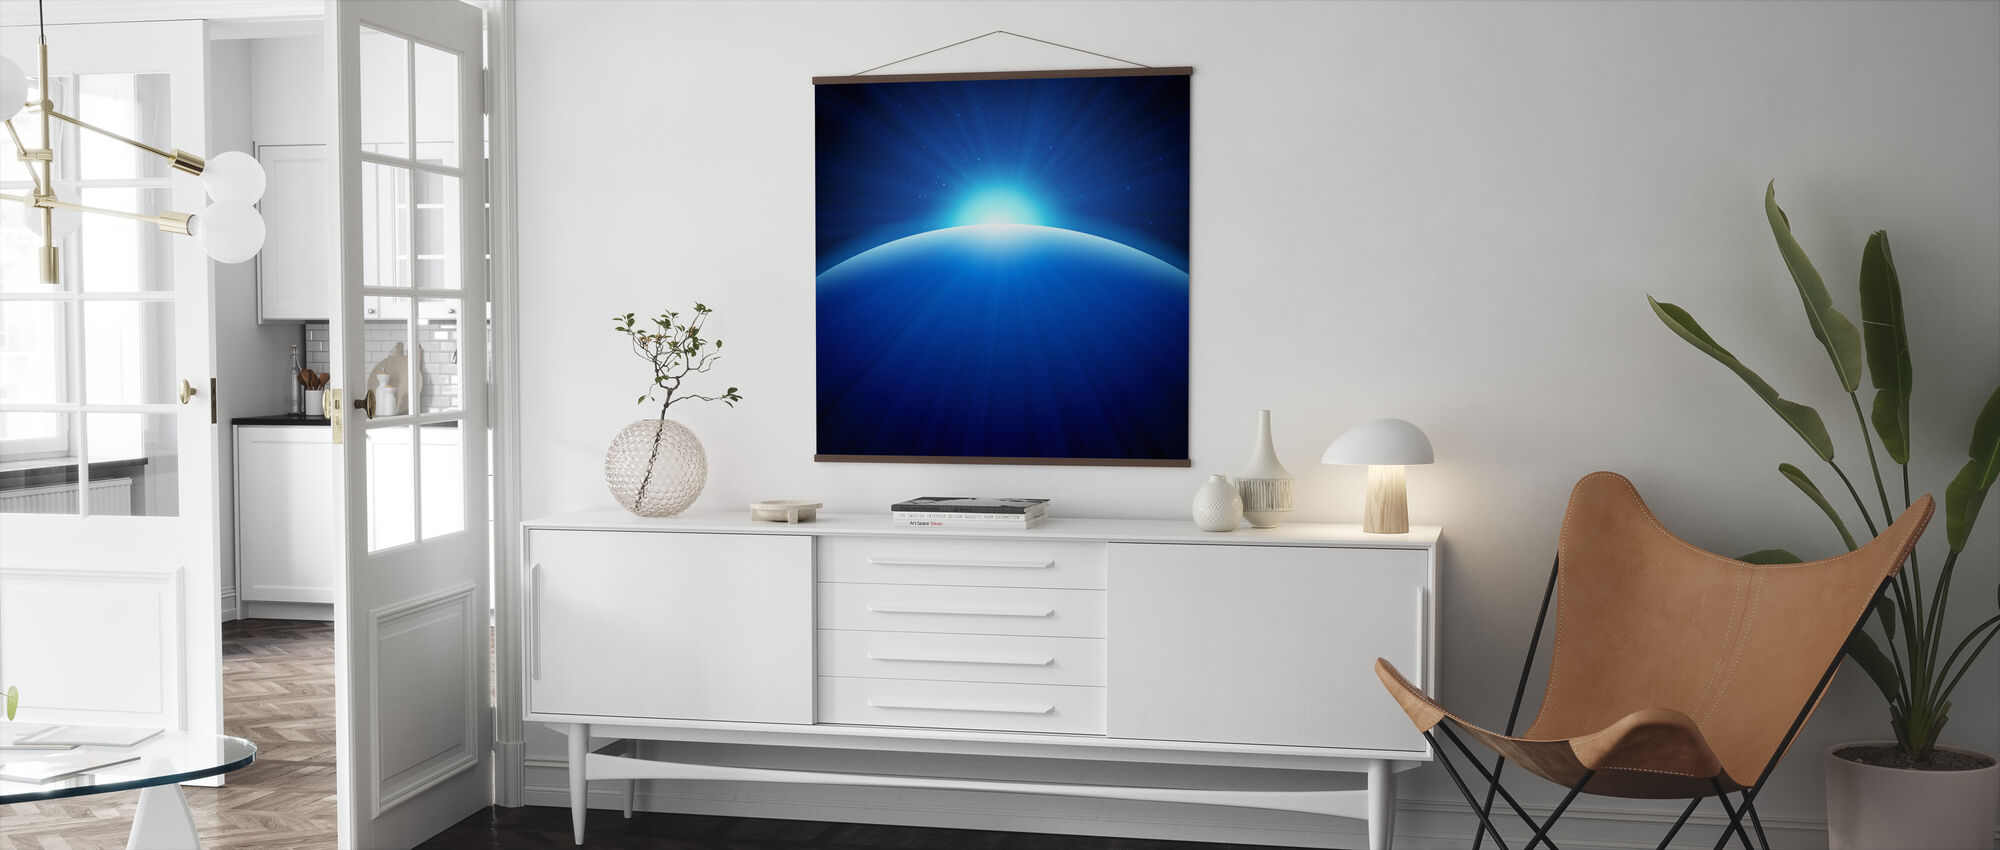 Global Edge Sunrise - Poster - Living Room